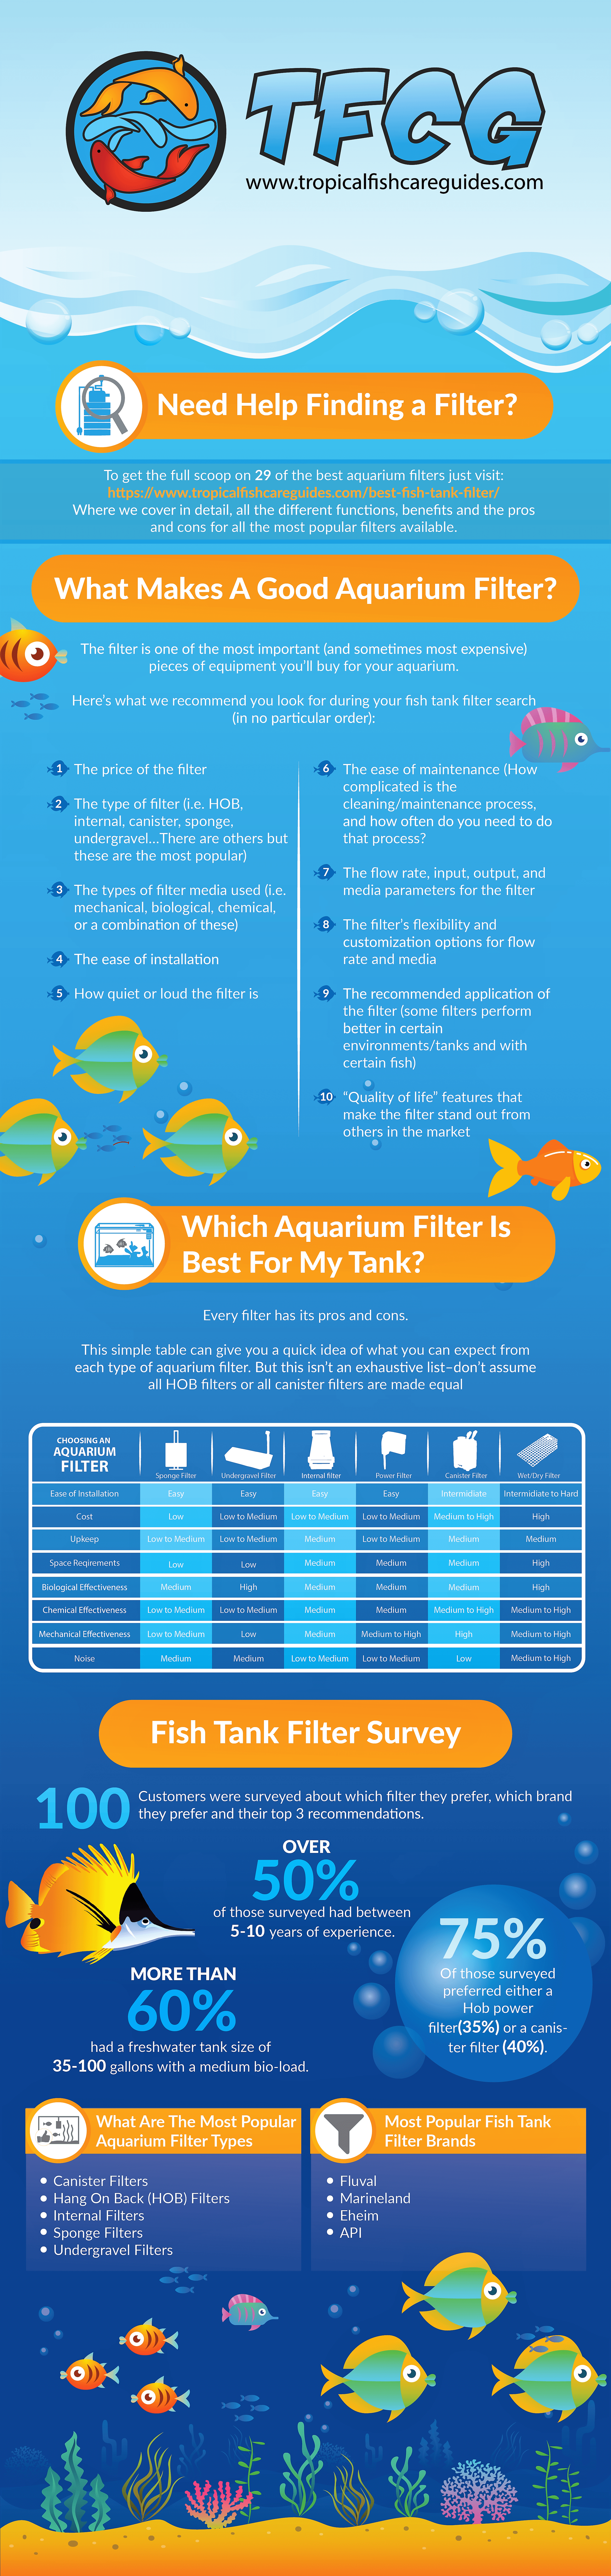 29 The Best Aquarium Filters – New 2018 Reviews Top Picks & Guide